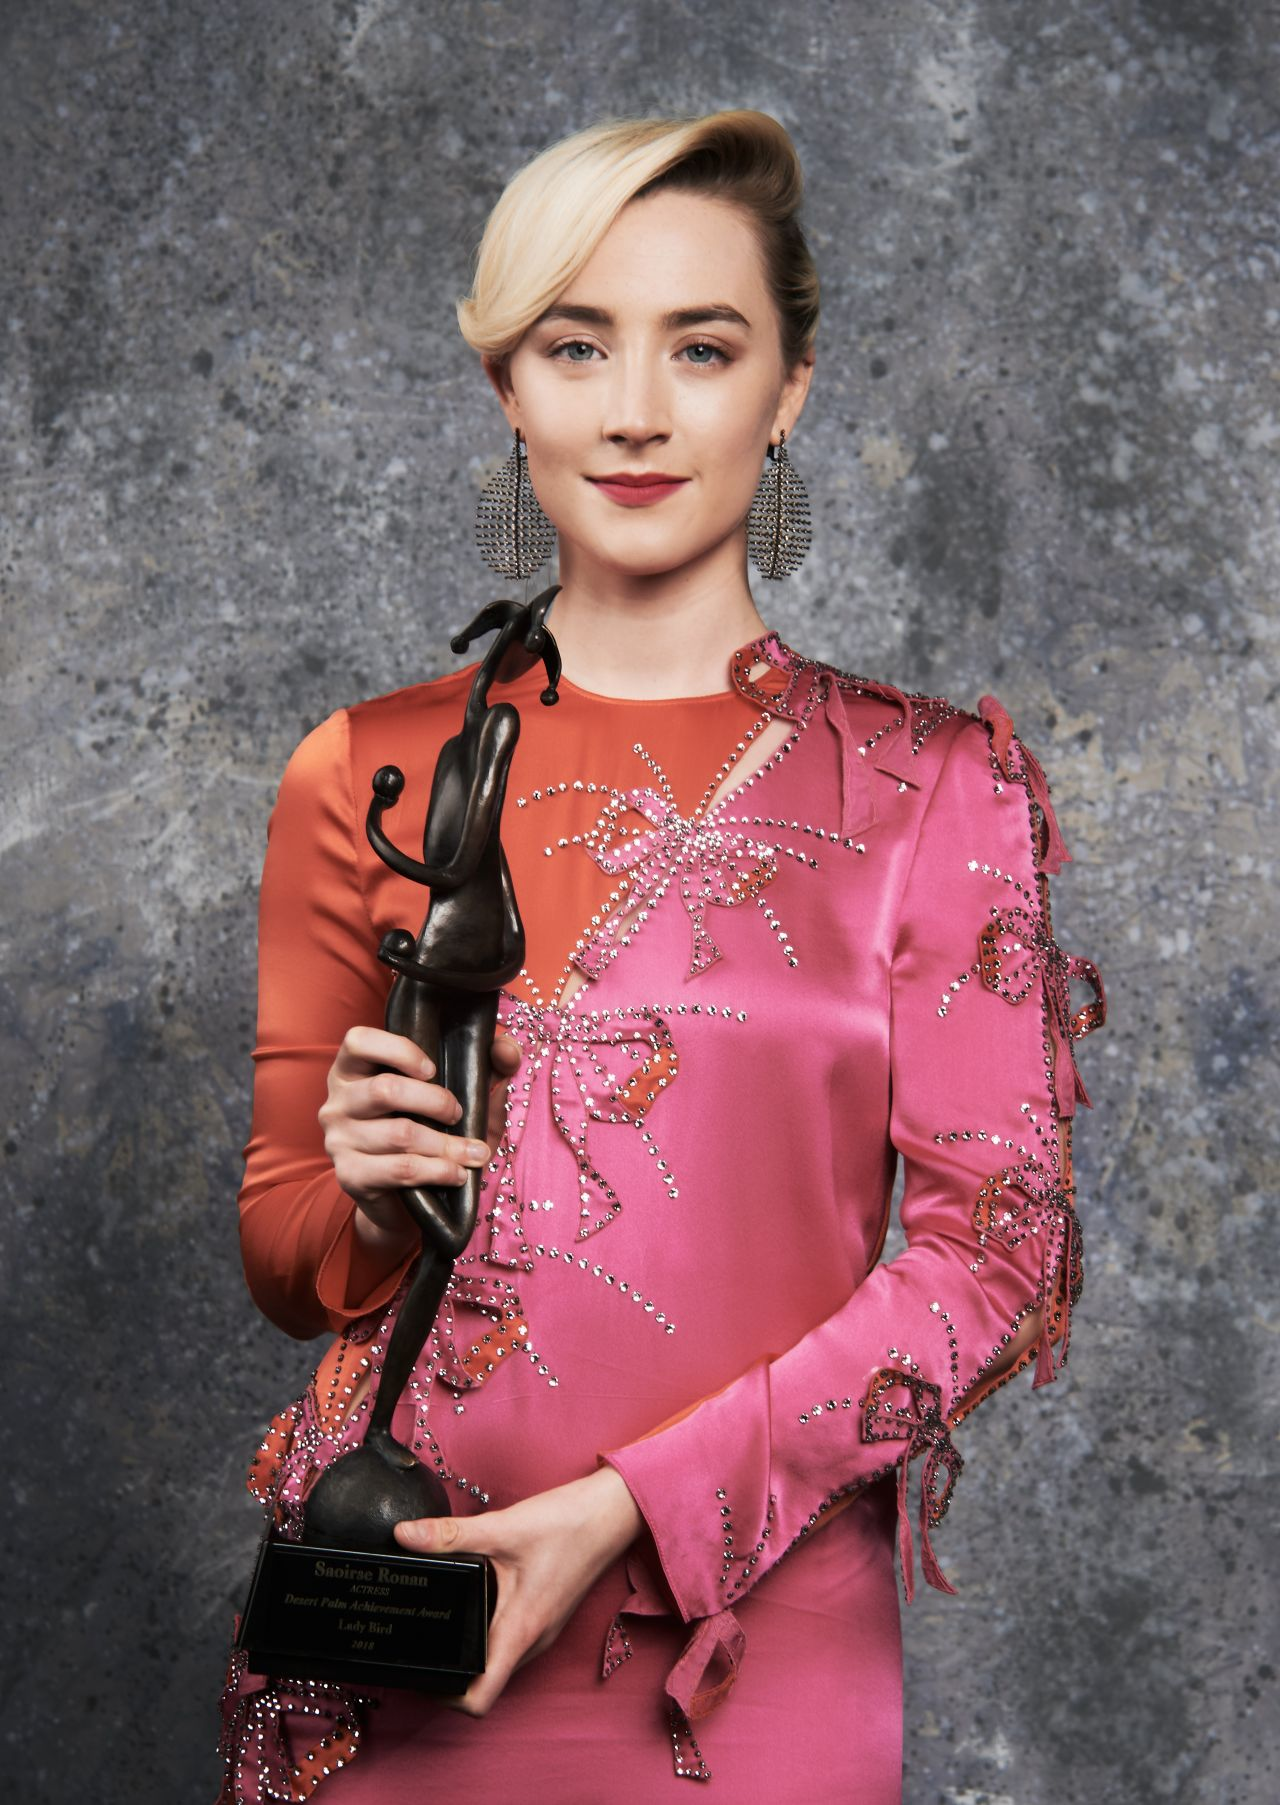 http://celebmafia.com/wp-content/uploads/2018/01/saoirse-ronan-palm-springs-international-film-festival-awards-gala-portrait-studio-1.jpg